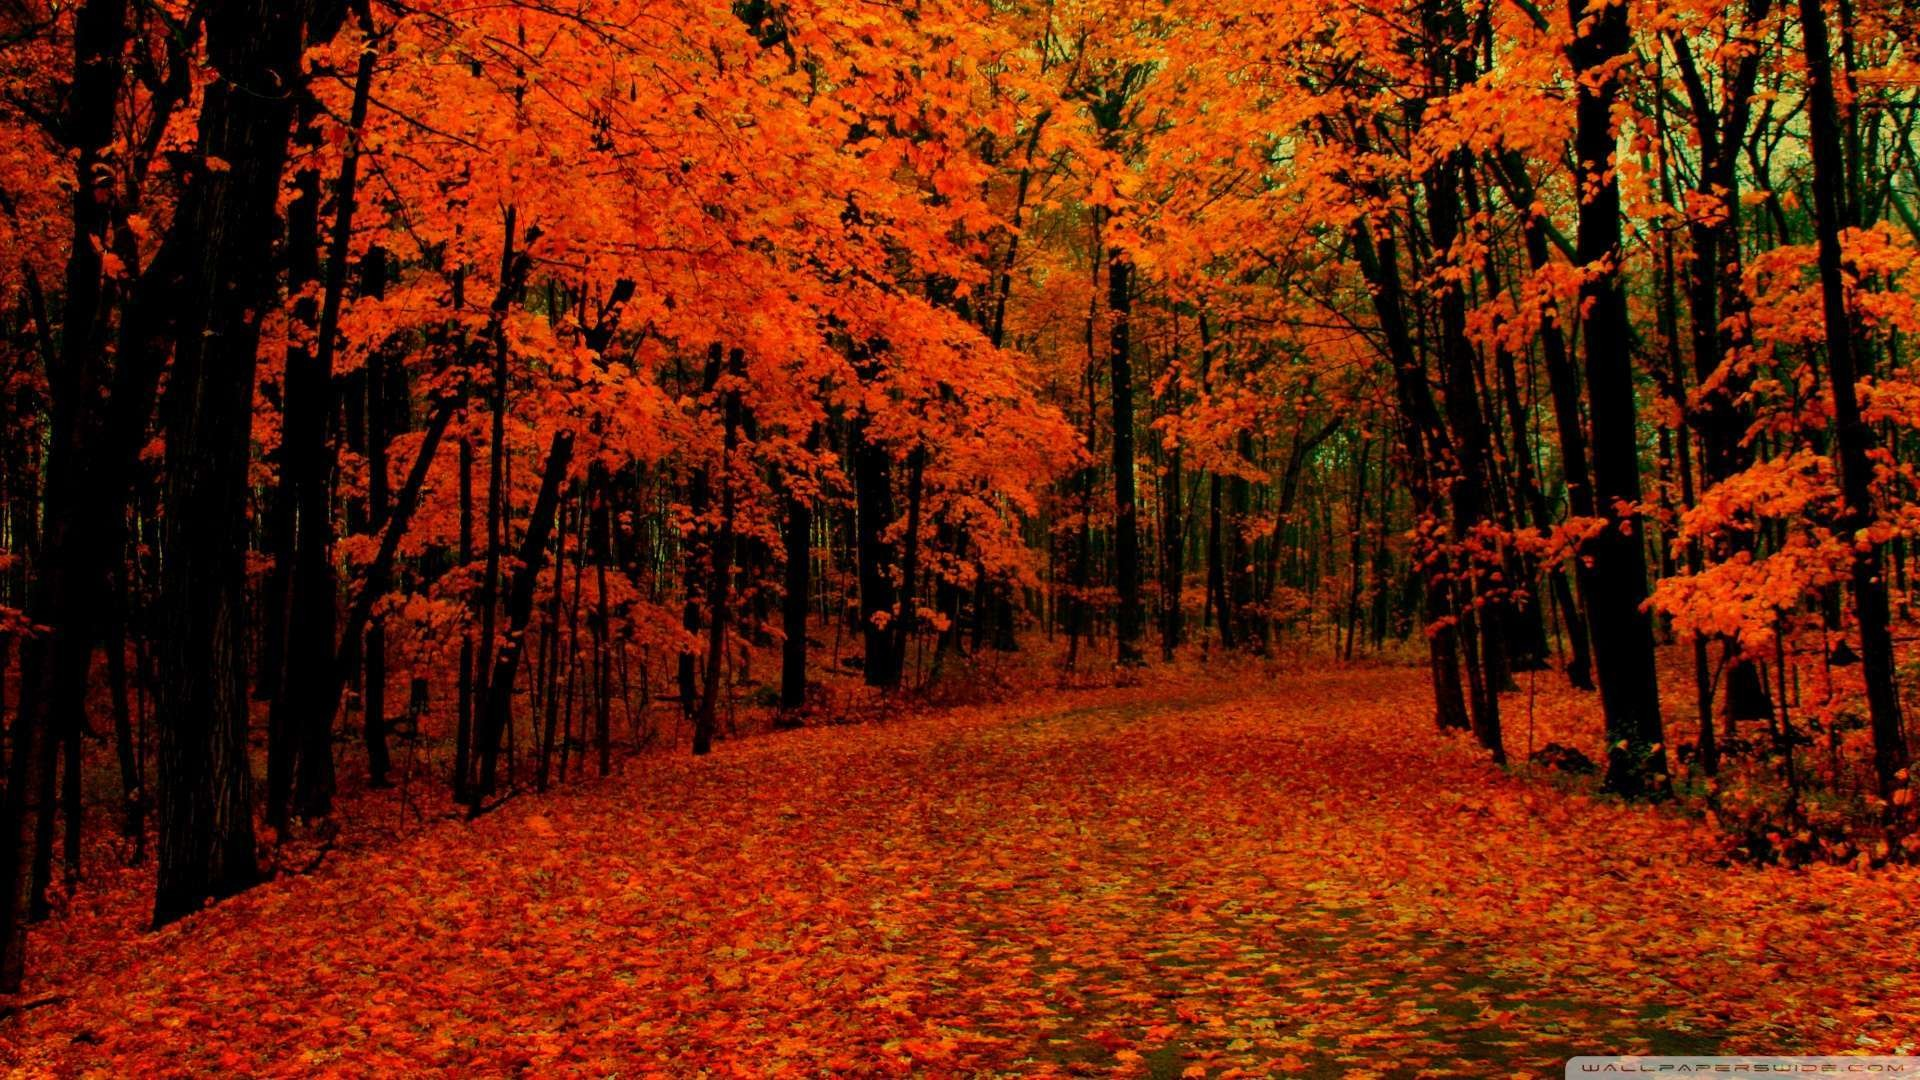 … Autumn Nature Wallpapers HD Pictures | One HD Wallpaper Pictures …